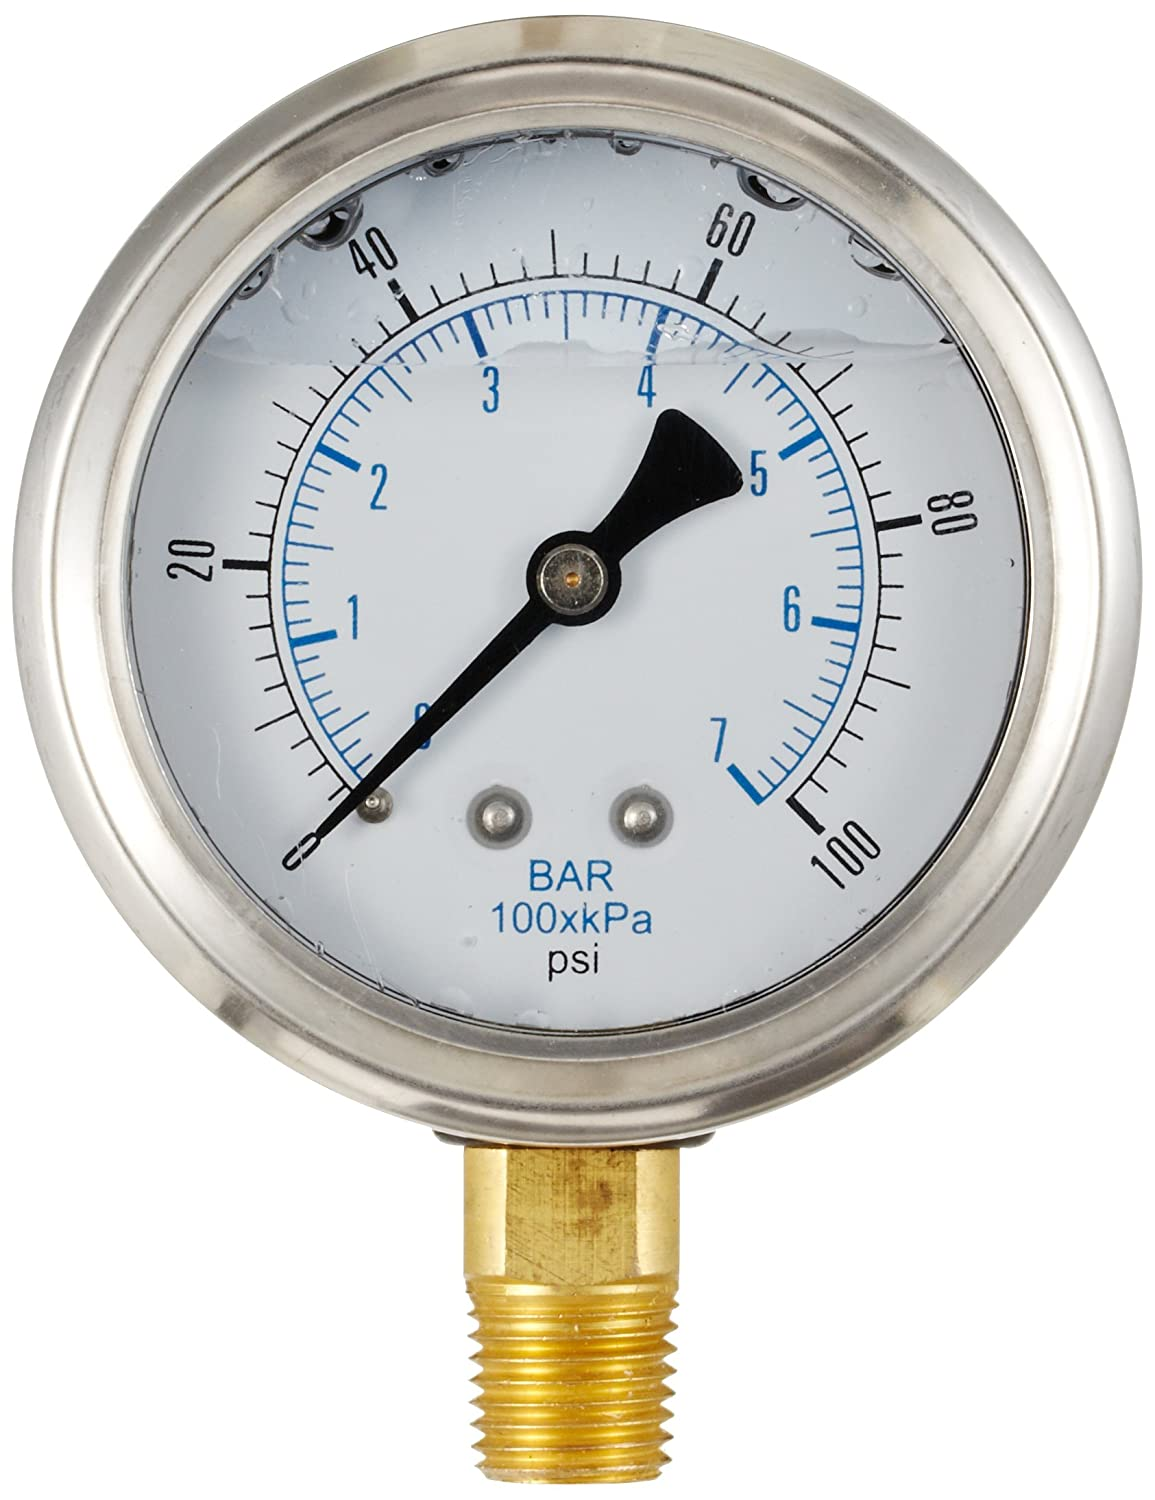 PIC Gauge 201L 158E 1.5 Dial 0 100 psi Range 1 8 Male NPT Connection Size Bottom Mount Glycerine Filled Pressure Gauge with a Stainless Steel Case Brass Internals Stainless Steel Bezel and Polycarbonate Lens